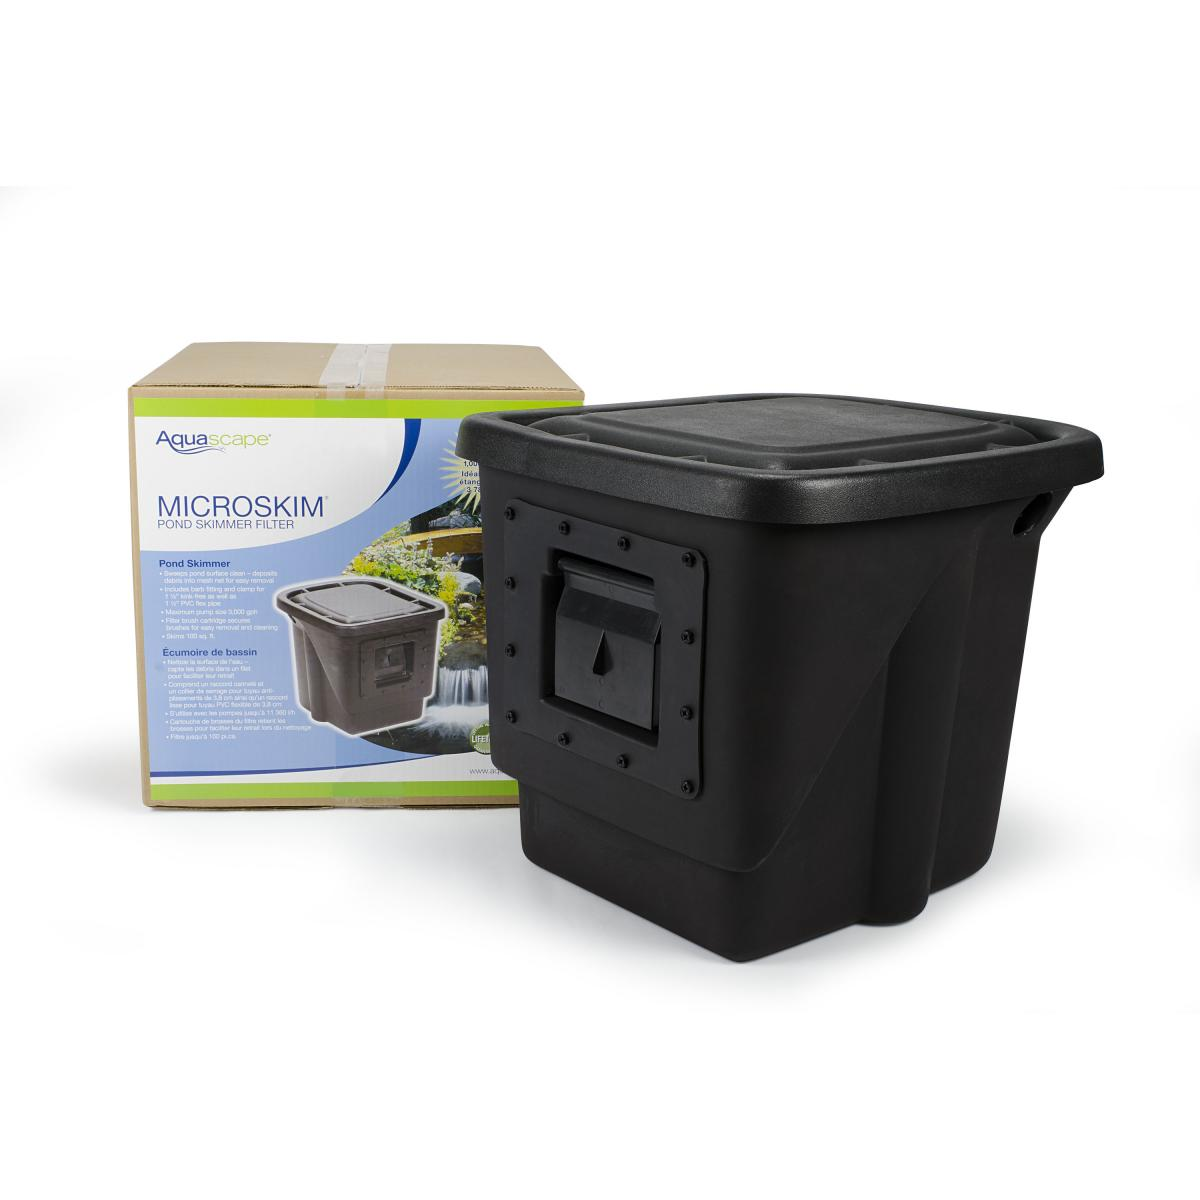 Signature series 200 pond skimmer skimmer filters for Outdoor pond filter